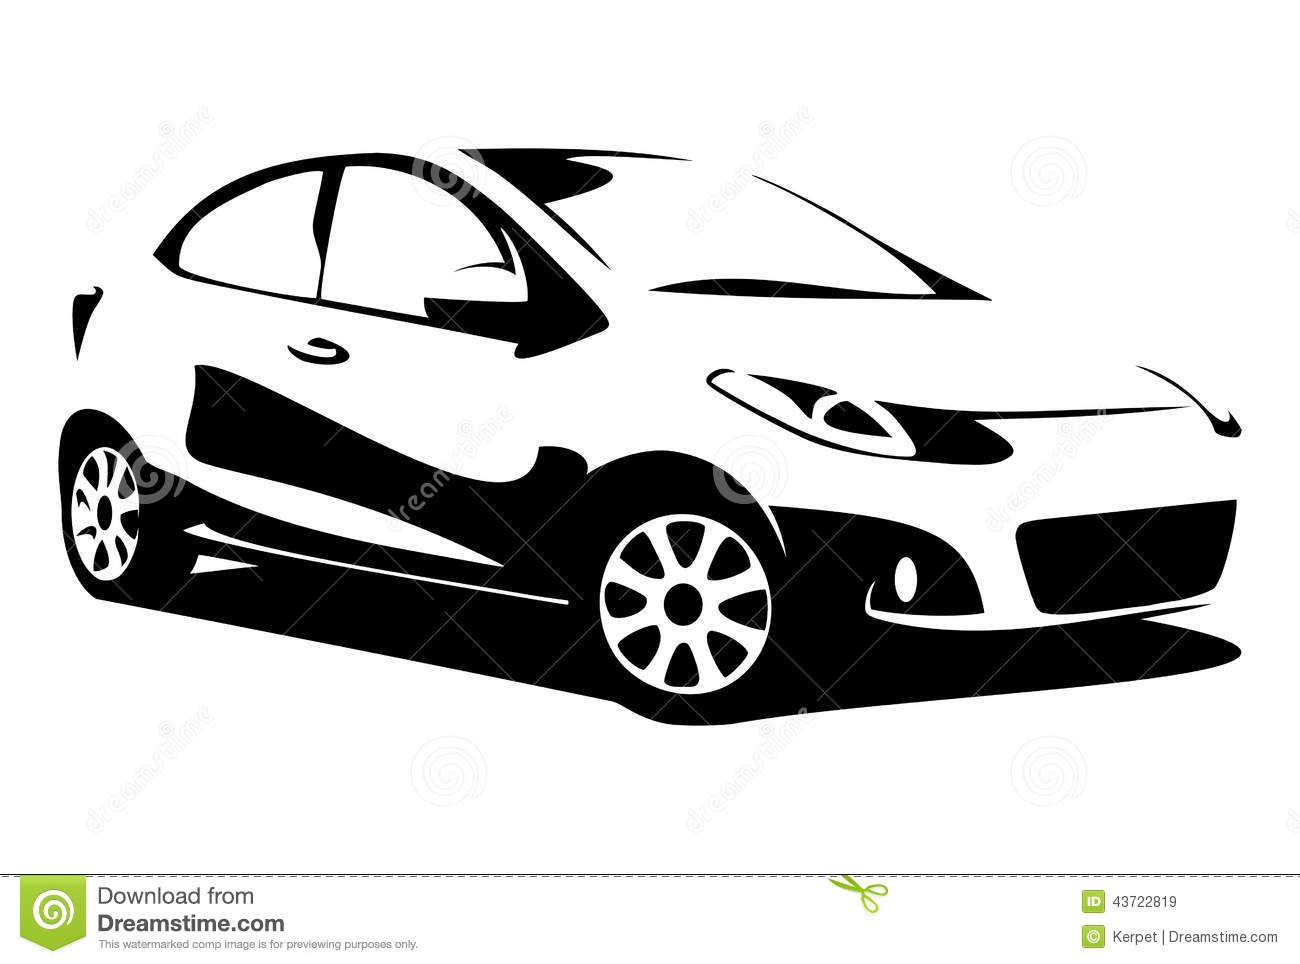 Royalty Free Stock Photos Cartoon Police Car Image21838198 as well Flyers together with Drivers License also Car Icon together with Stock Illustration Car Silhouette Print Site Image43722819. on graphic design vehicle w…